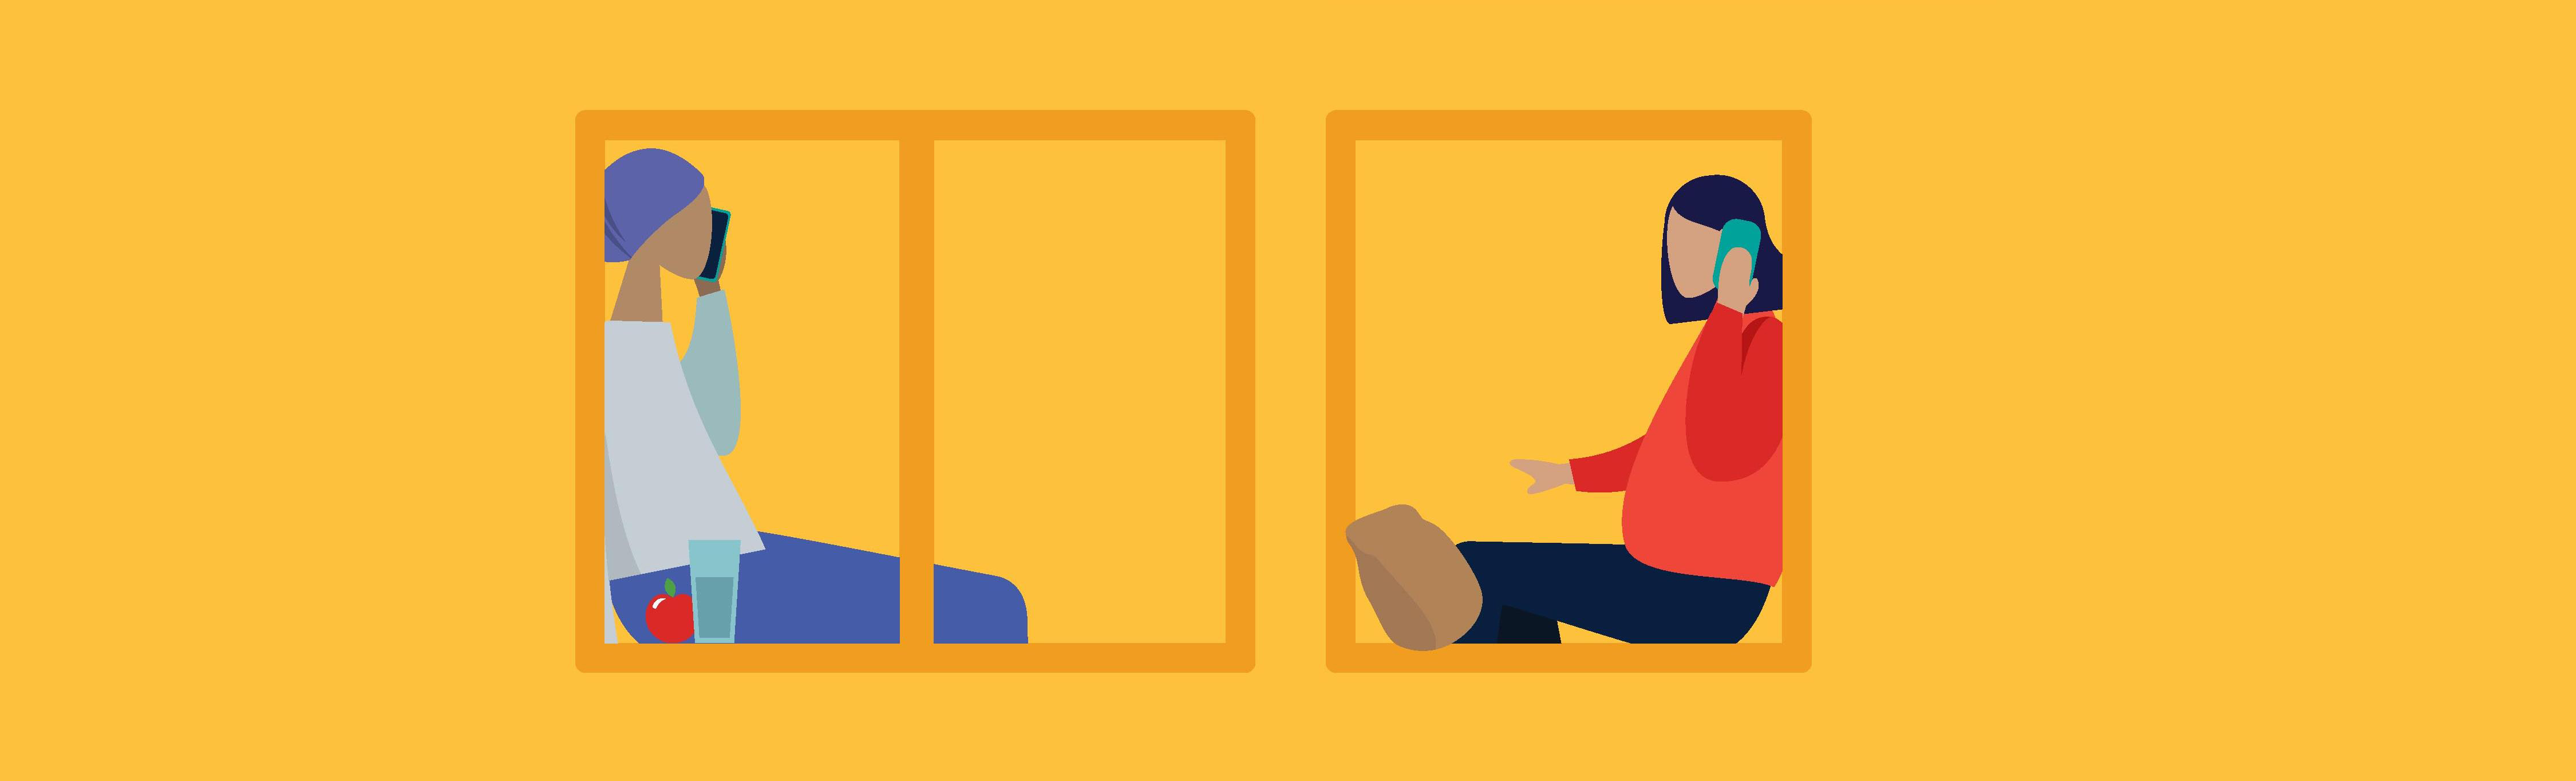 Thrive campaign illustration showing two people talking on the phone